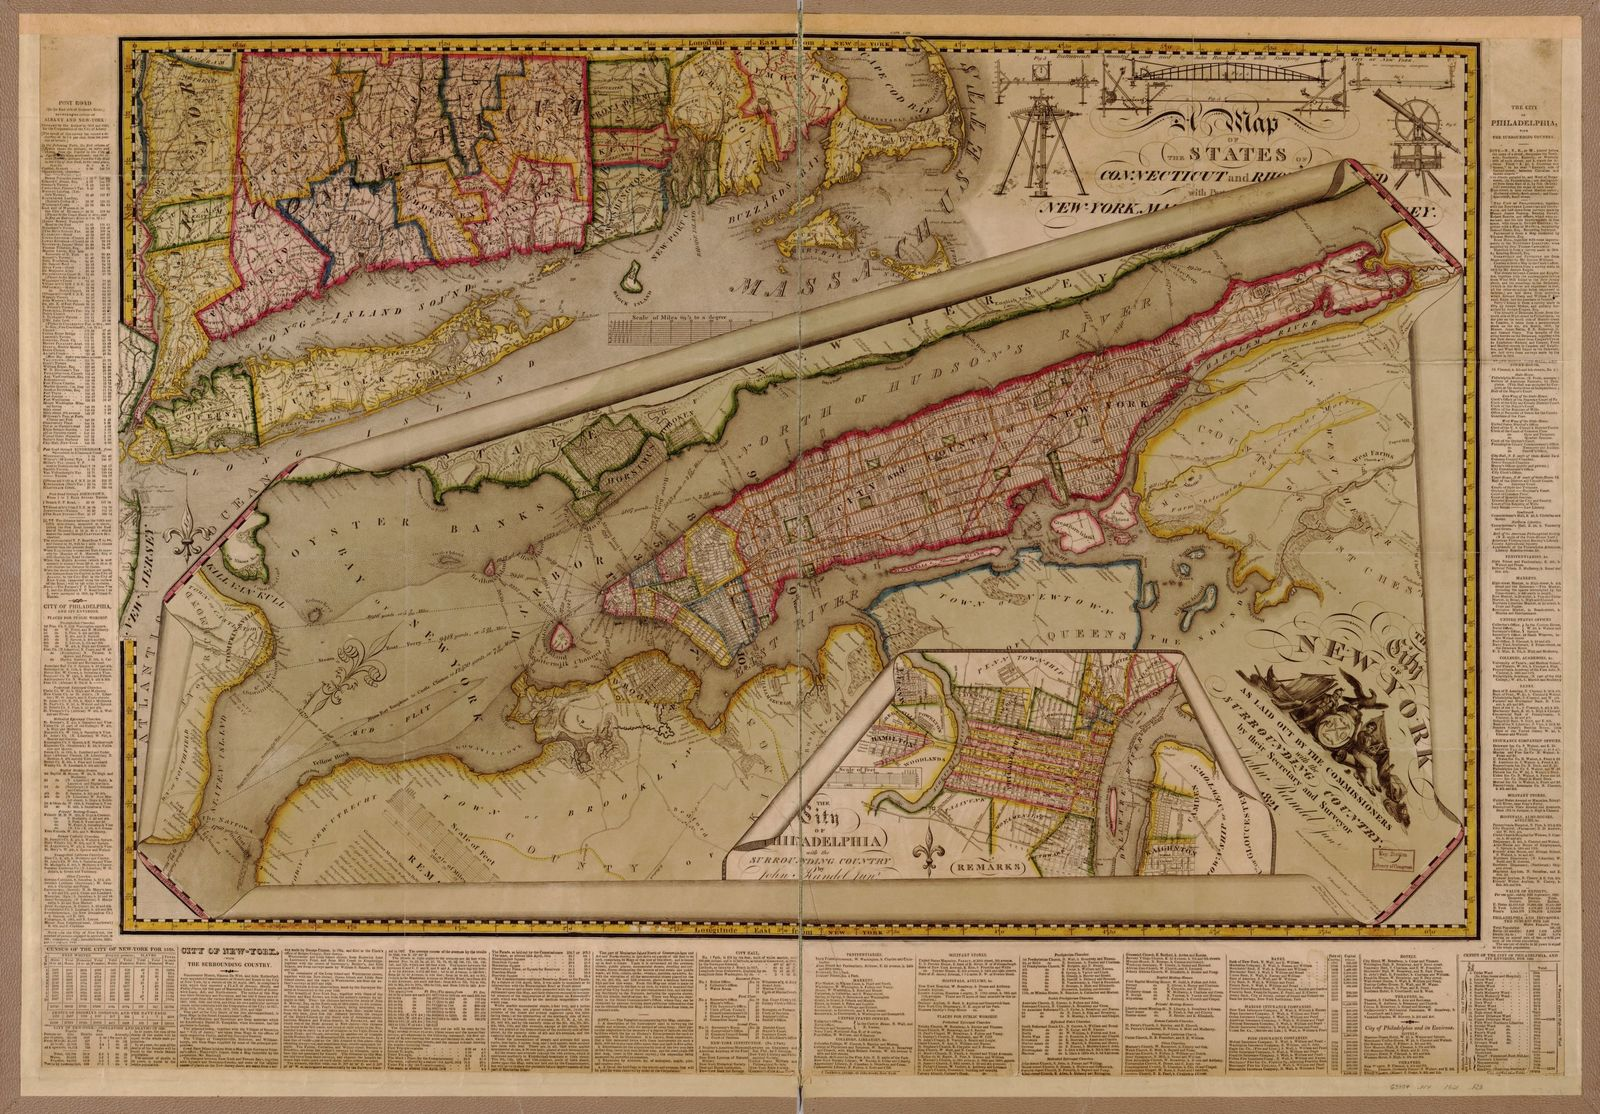 The City of New York as laid out by the Commissioners with the surrounding country /